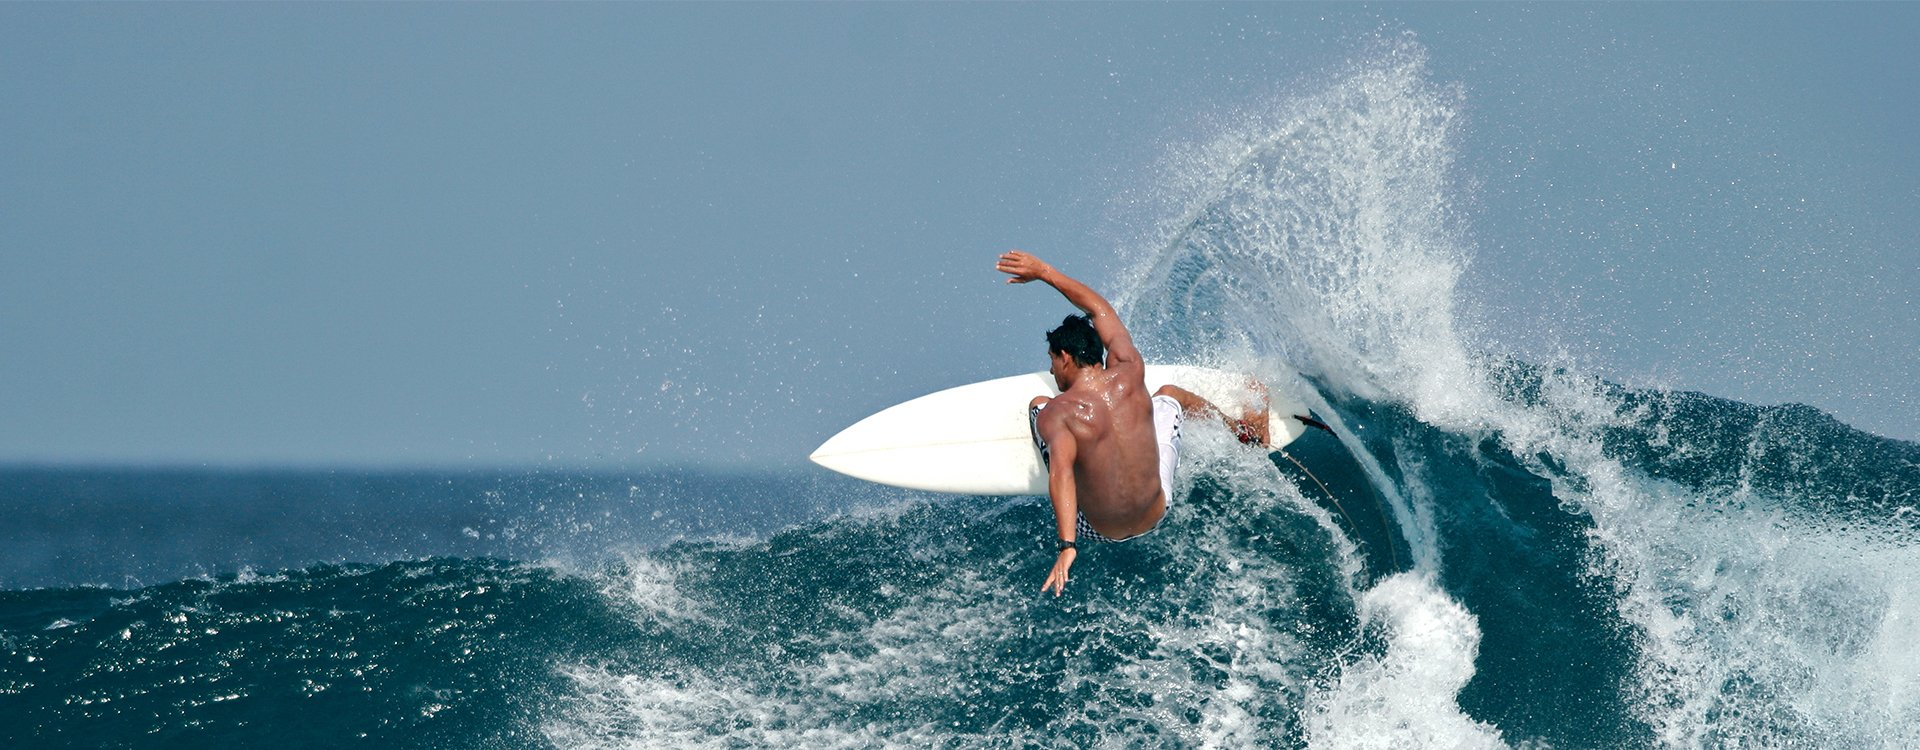 Surfing fitness for surfers and non surfers